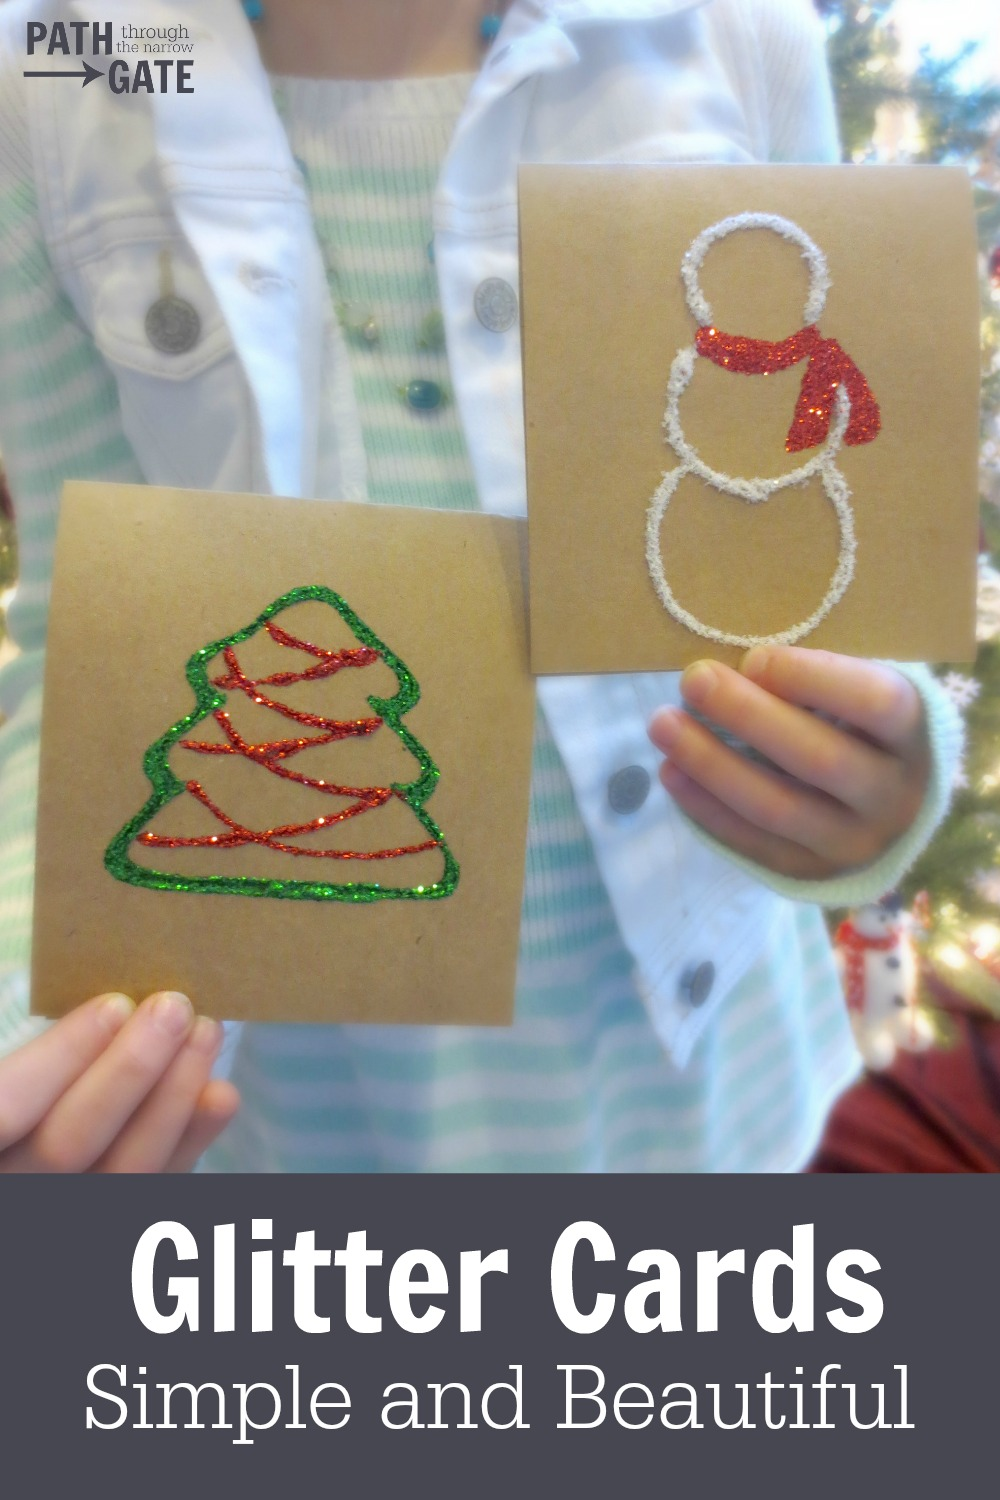 Are you looking for some inexpensive but beautiful gifts your children can make and give to friends, grandparents, teachers, and classmates? These simple, rustic Christmas Glitter Cards are a perfect way to let someone special know that you are thinking of them this Christmas season.